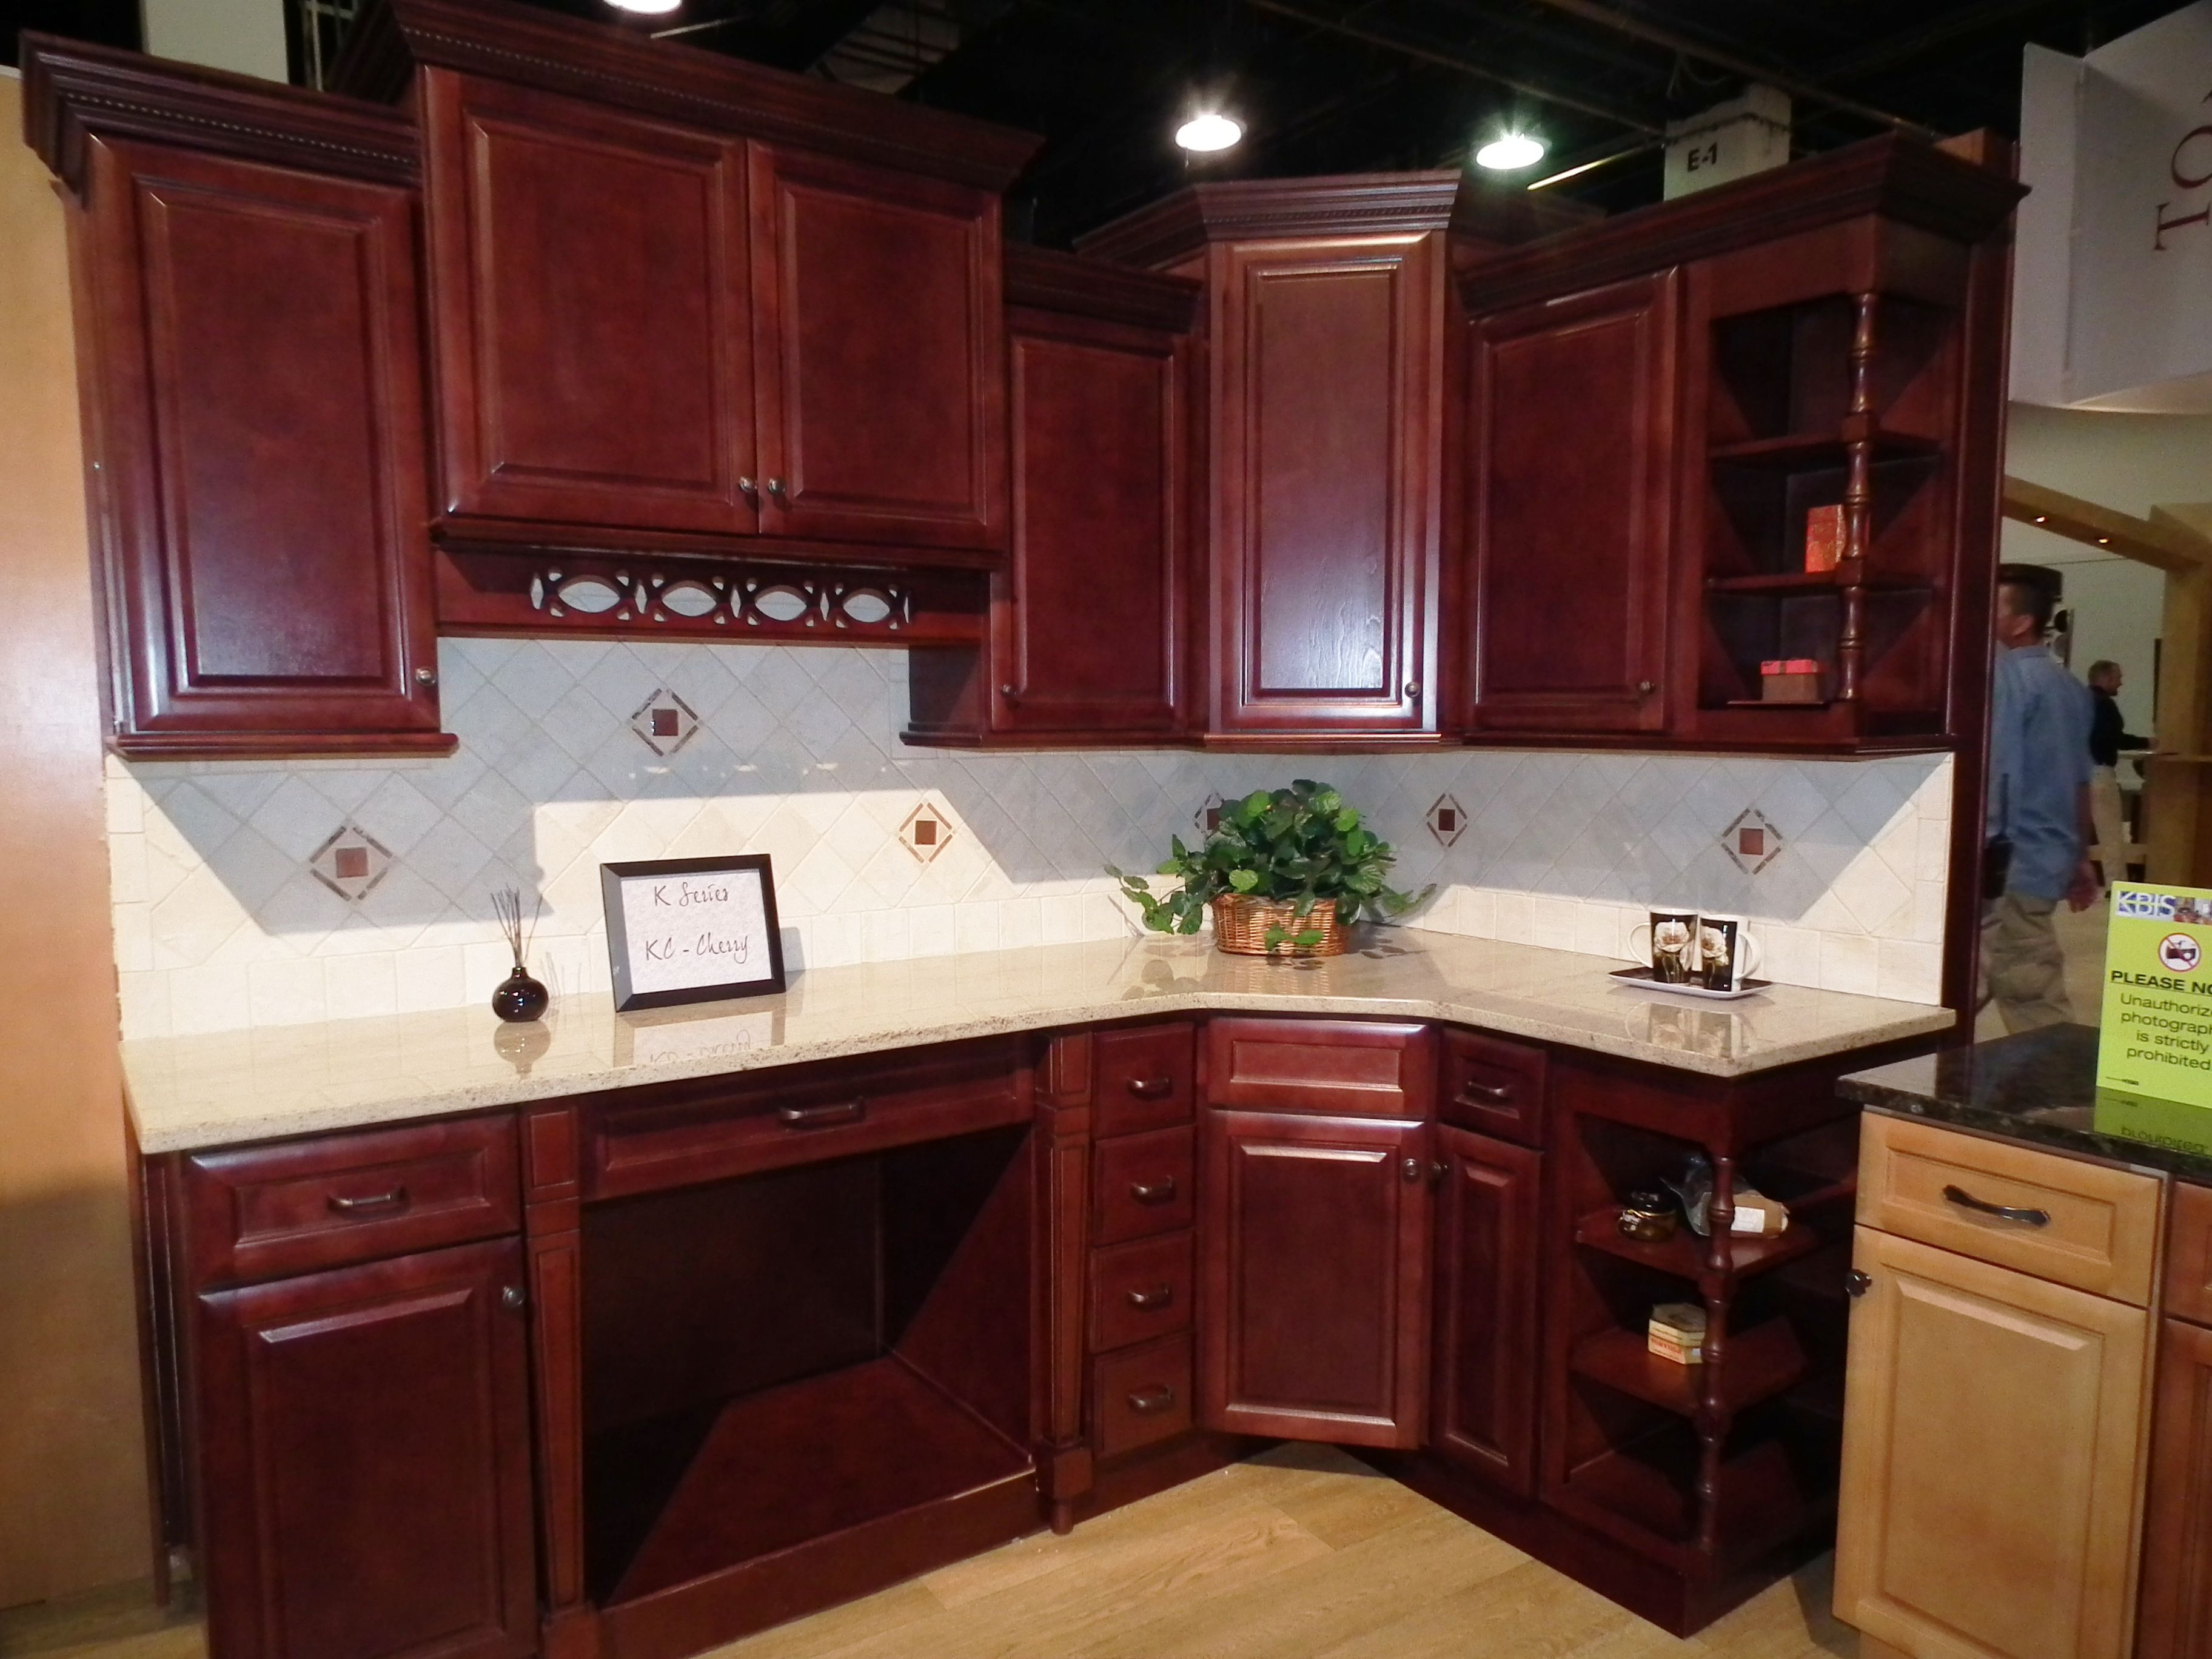 Adorable Design White Cabinets Kitchen with Wooden Material and Brown Color Accent